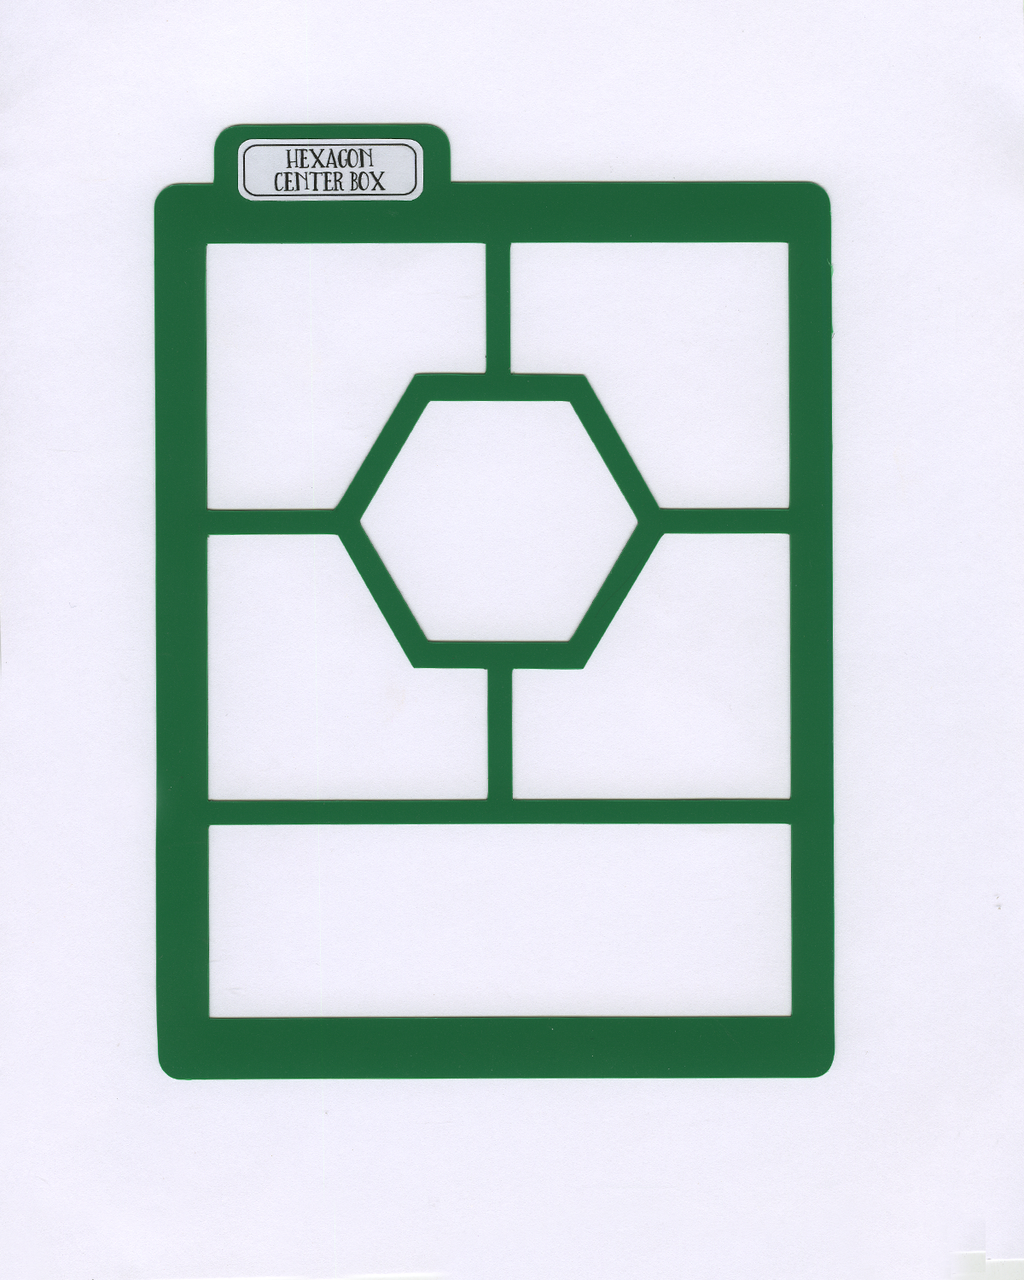 HEXAGON CENTER BOX Stencil